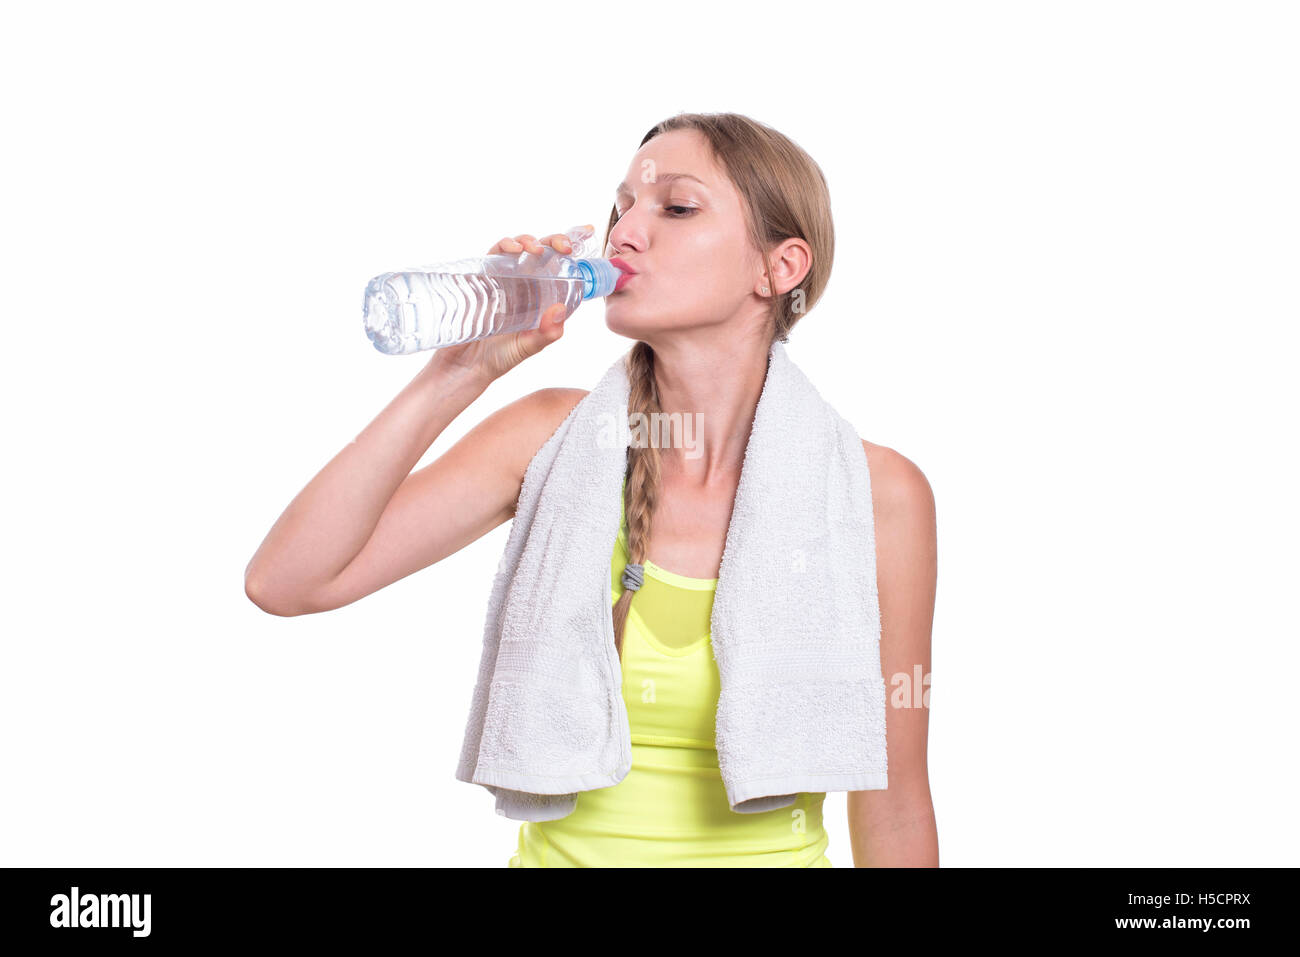 Sporty woman drinking water, isolated on white background Stock Photo